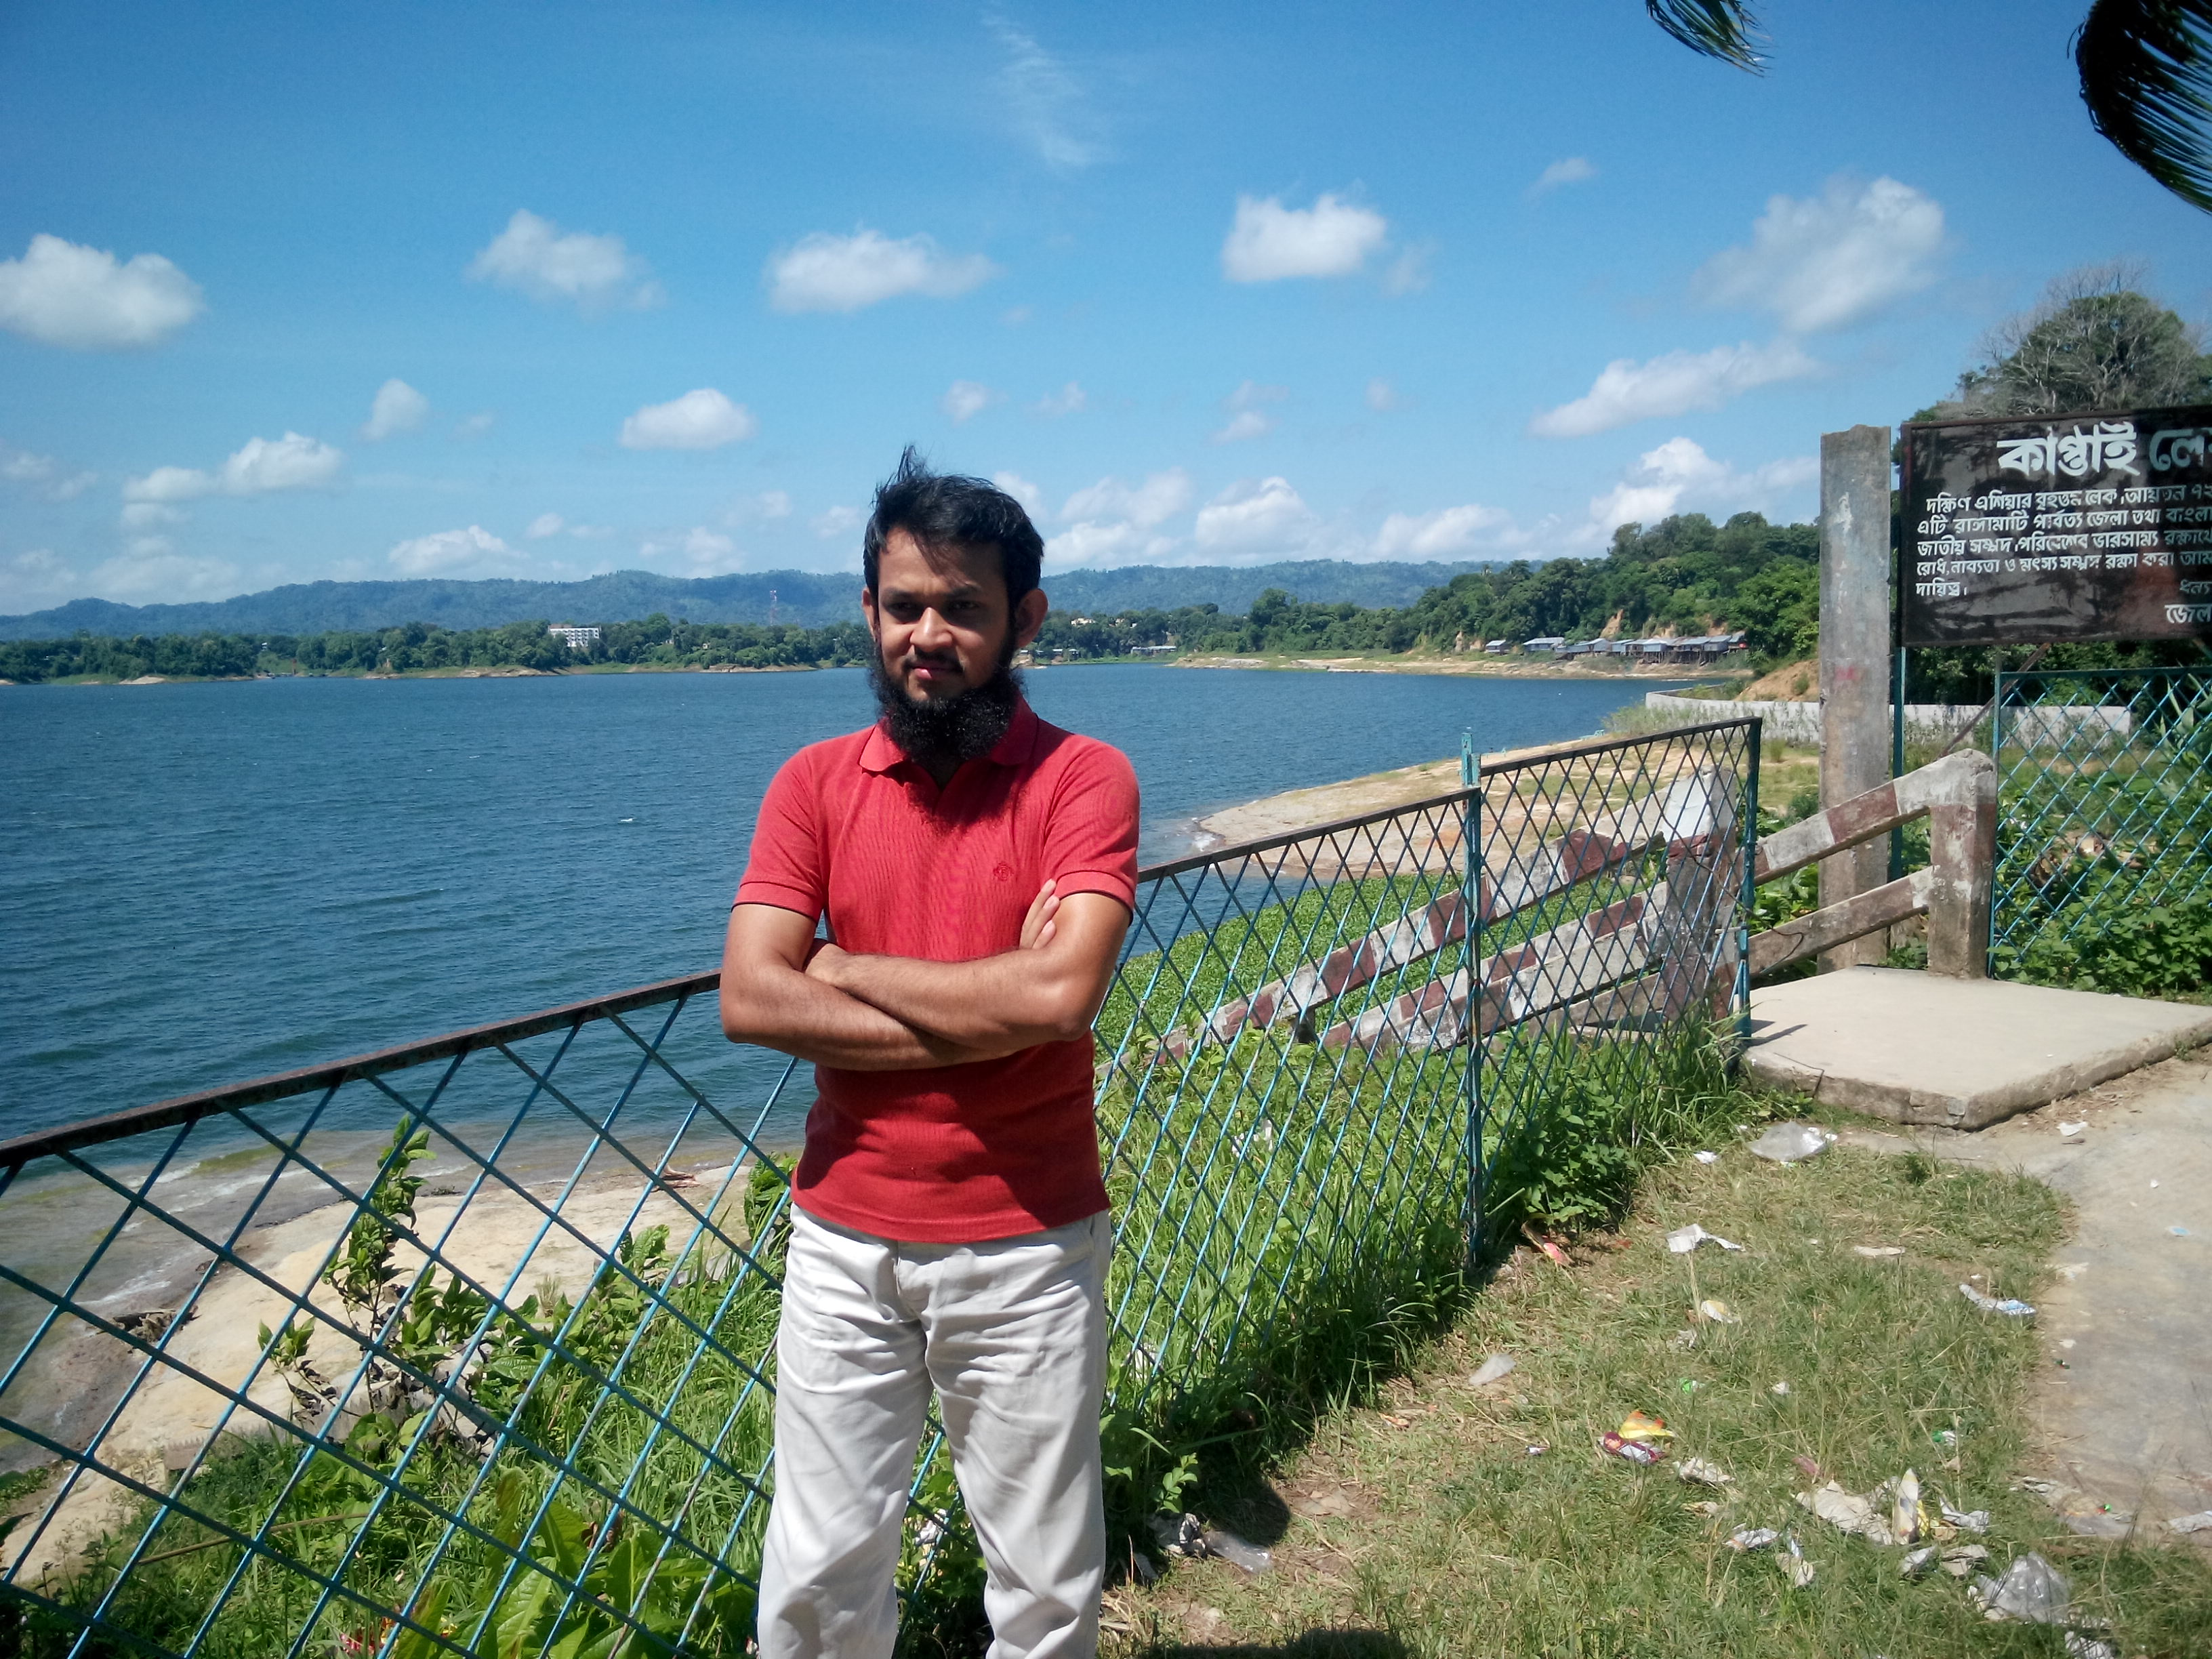 In front of Kaptai Lake